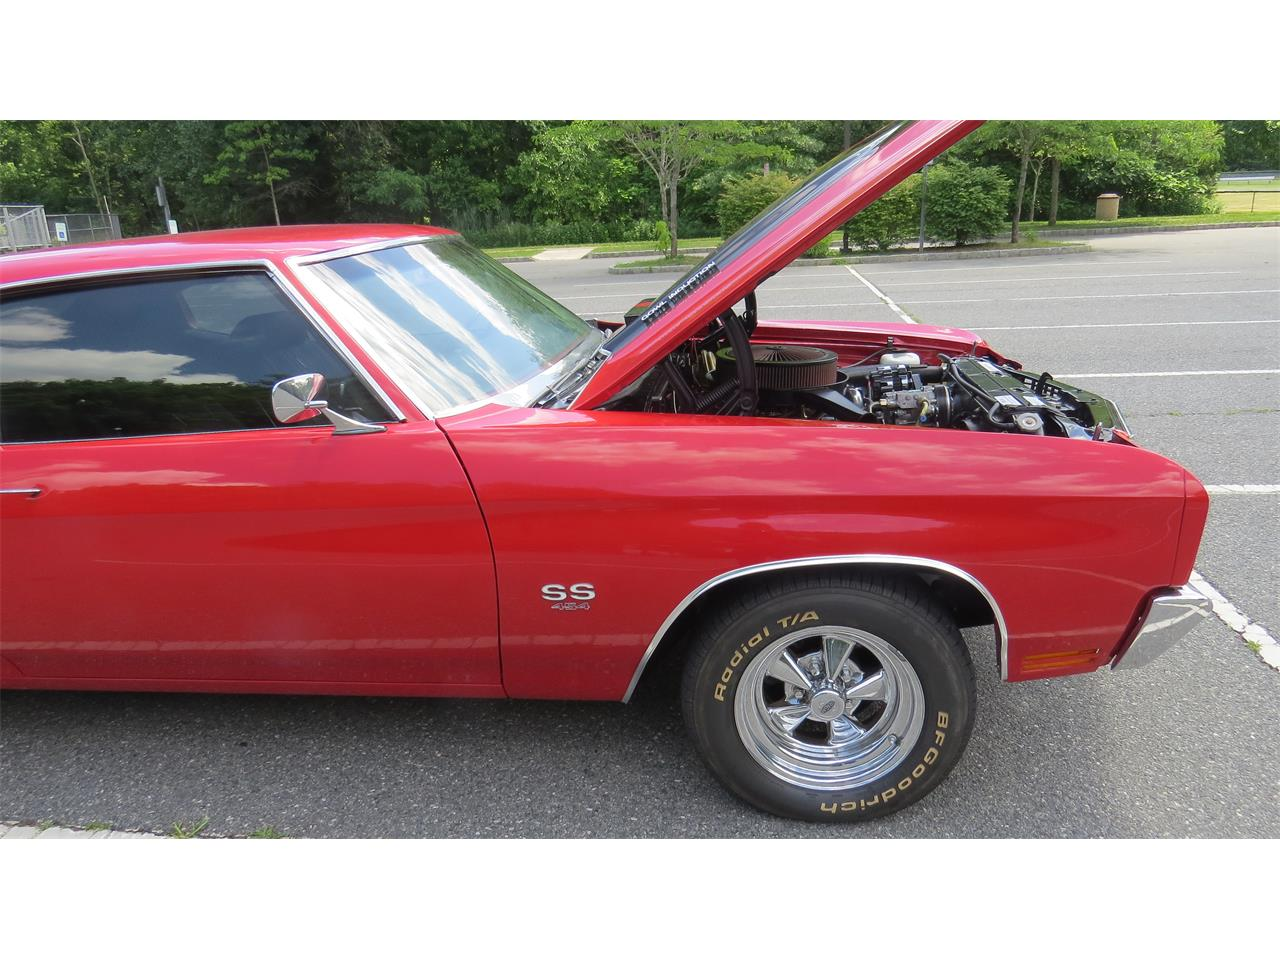 Large Picture of 1970 Chevrolet Chevelle SS located in New Jersey Offered by a Private Seller - PSWS